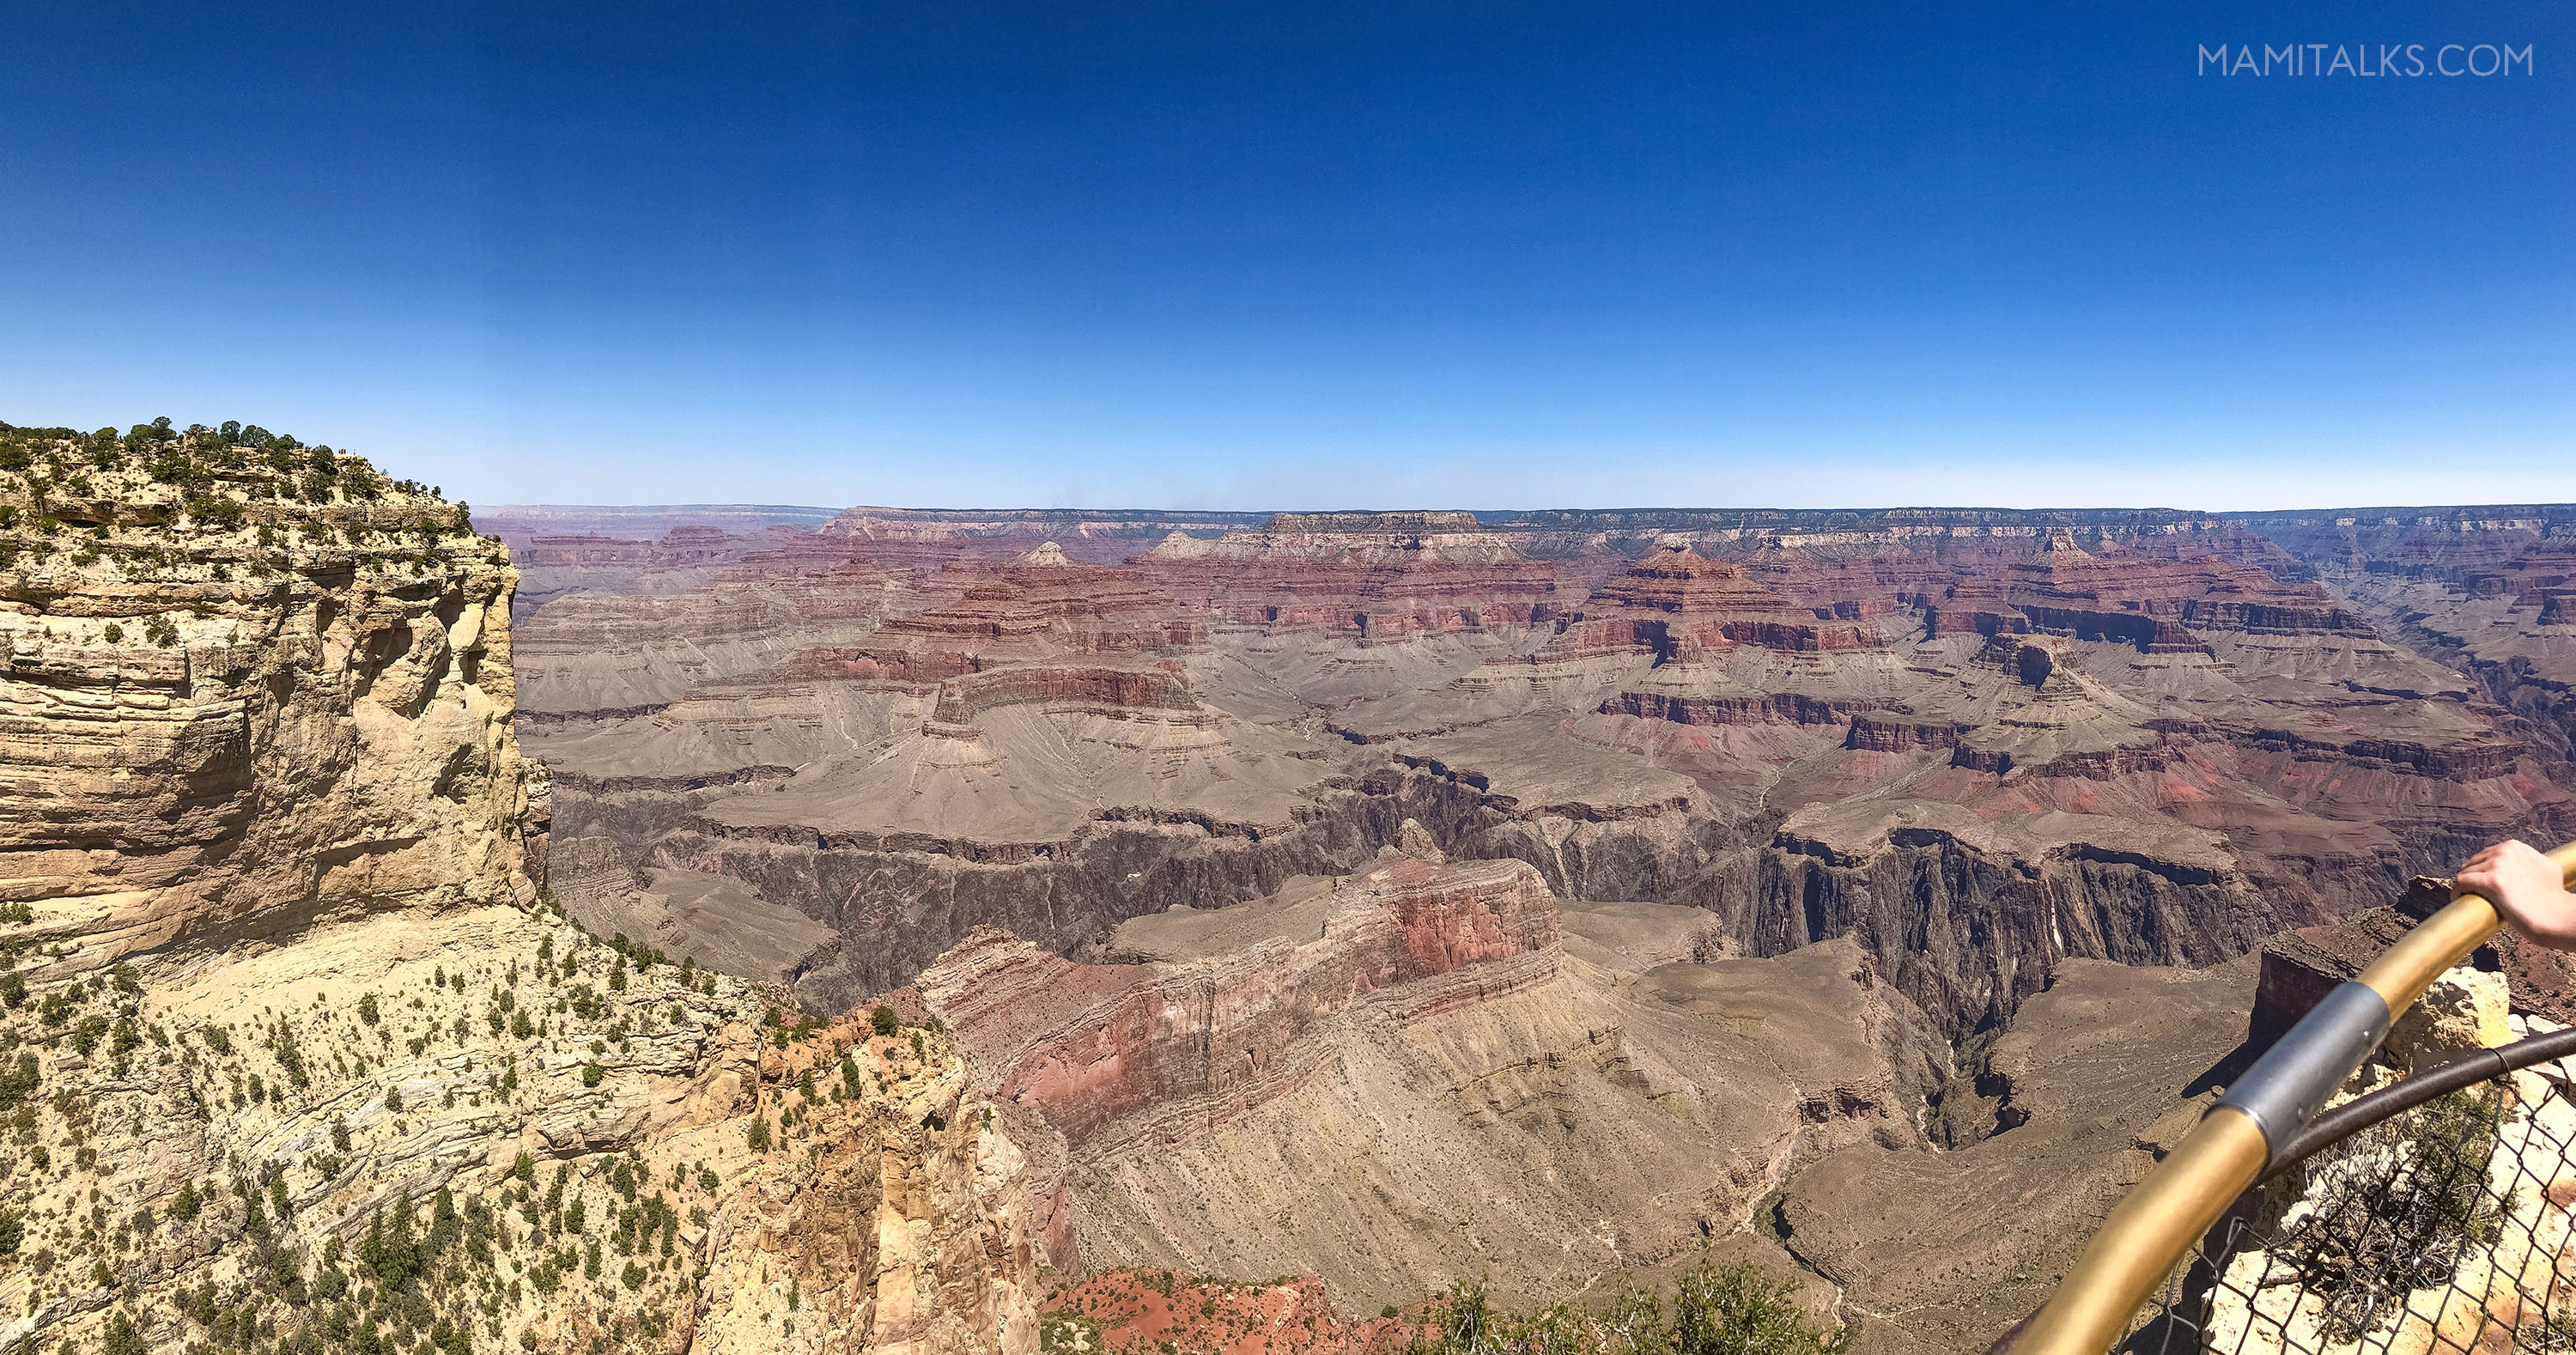 Panoramic view of the Grand Canyon. -MamiTalks.com